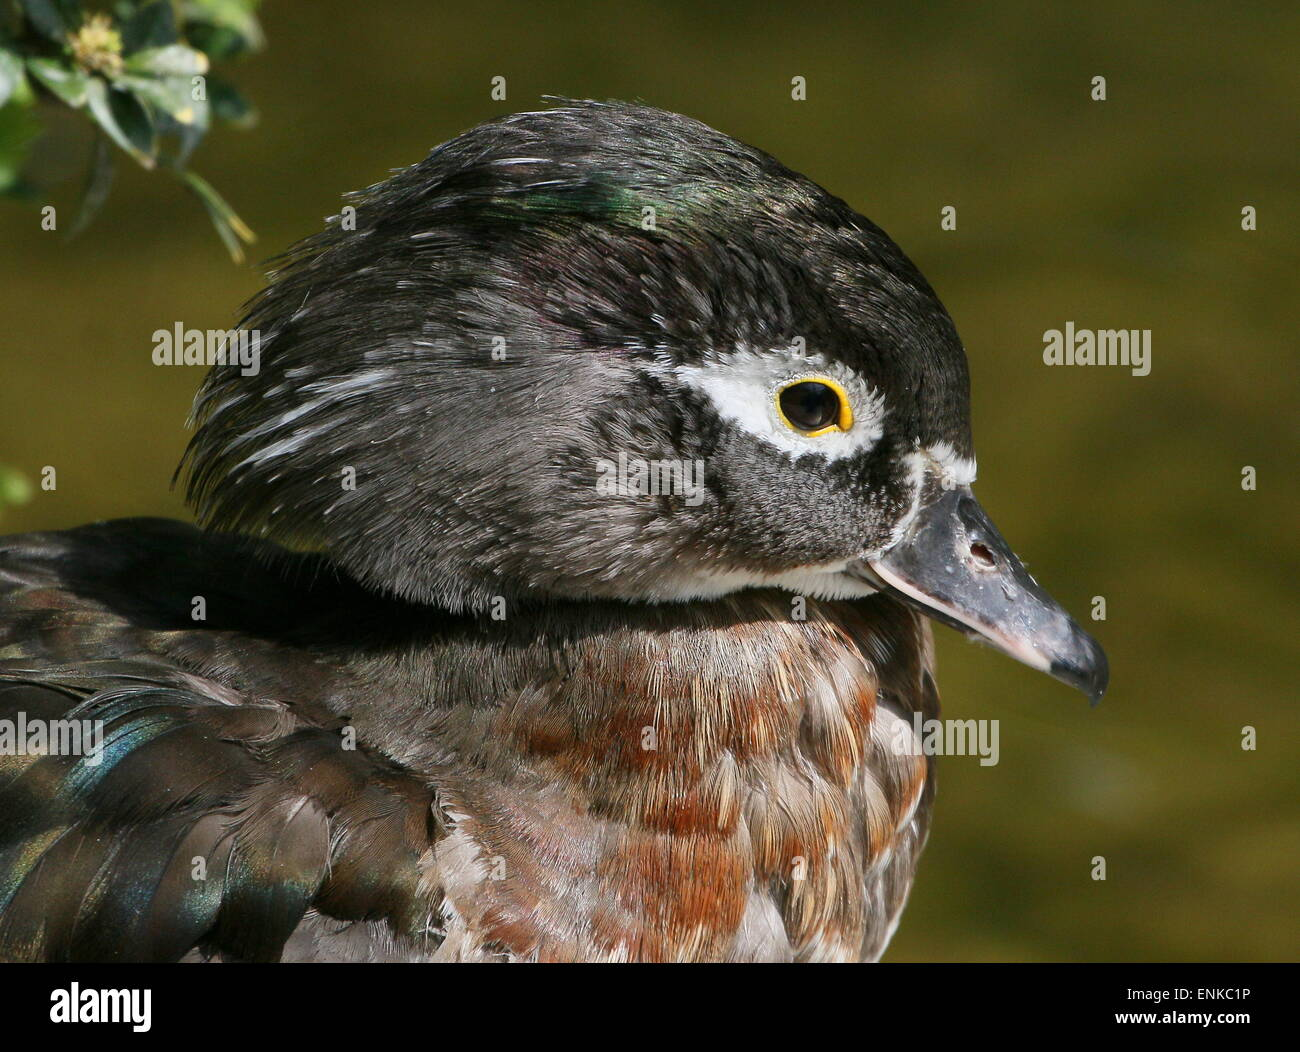 North American Wood duck or Carolina duck (Aix sponsa) in eclipse plumage, probably a young maleStock Photo